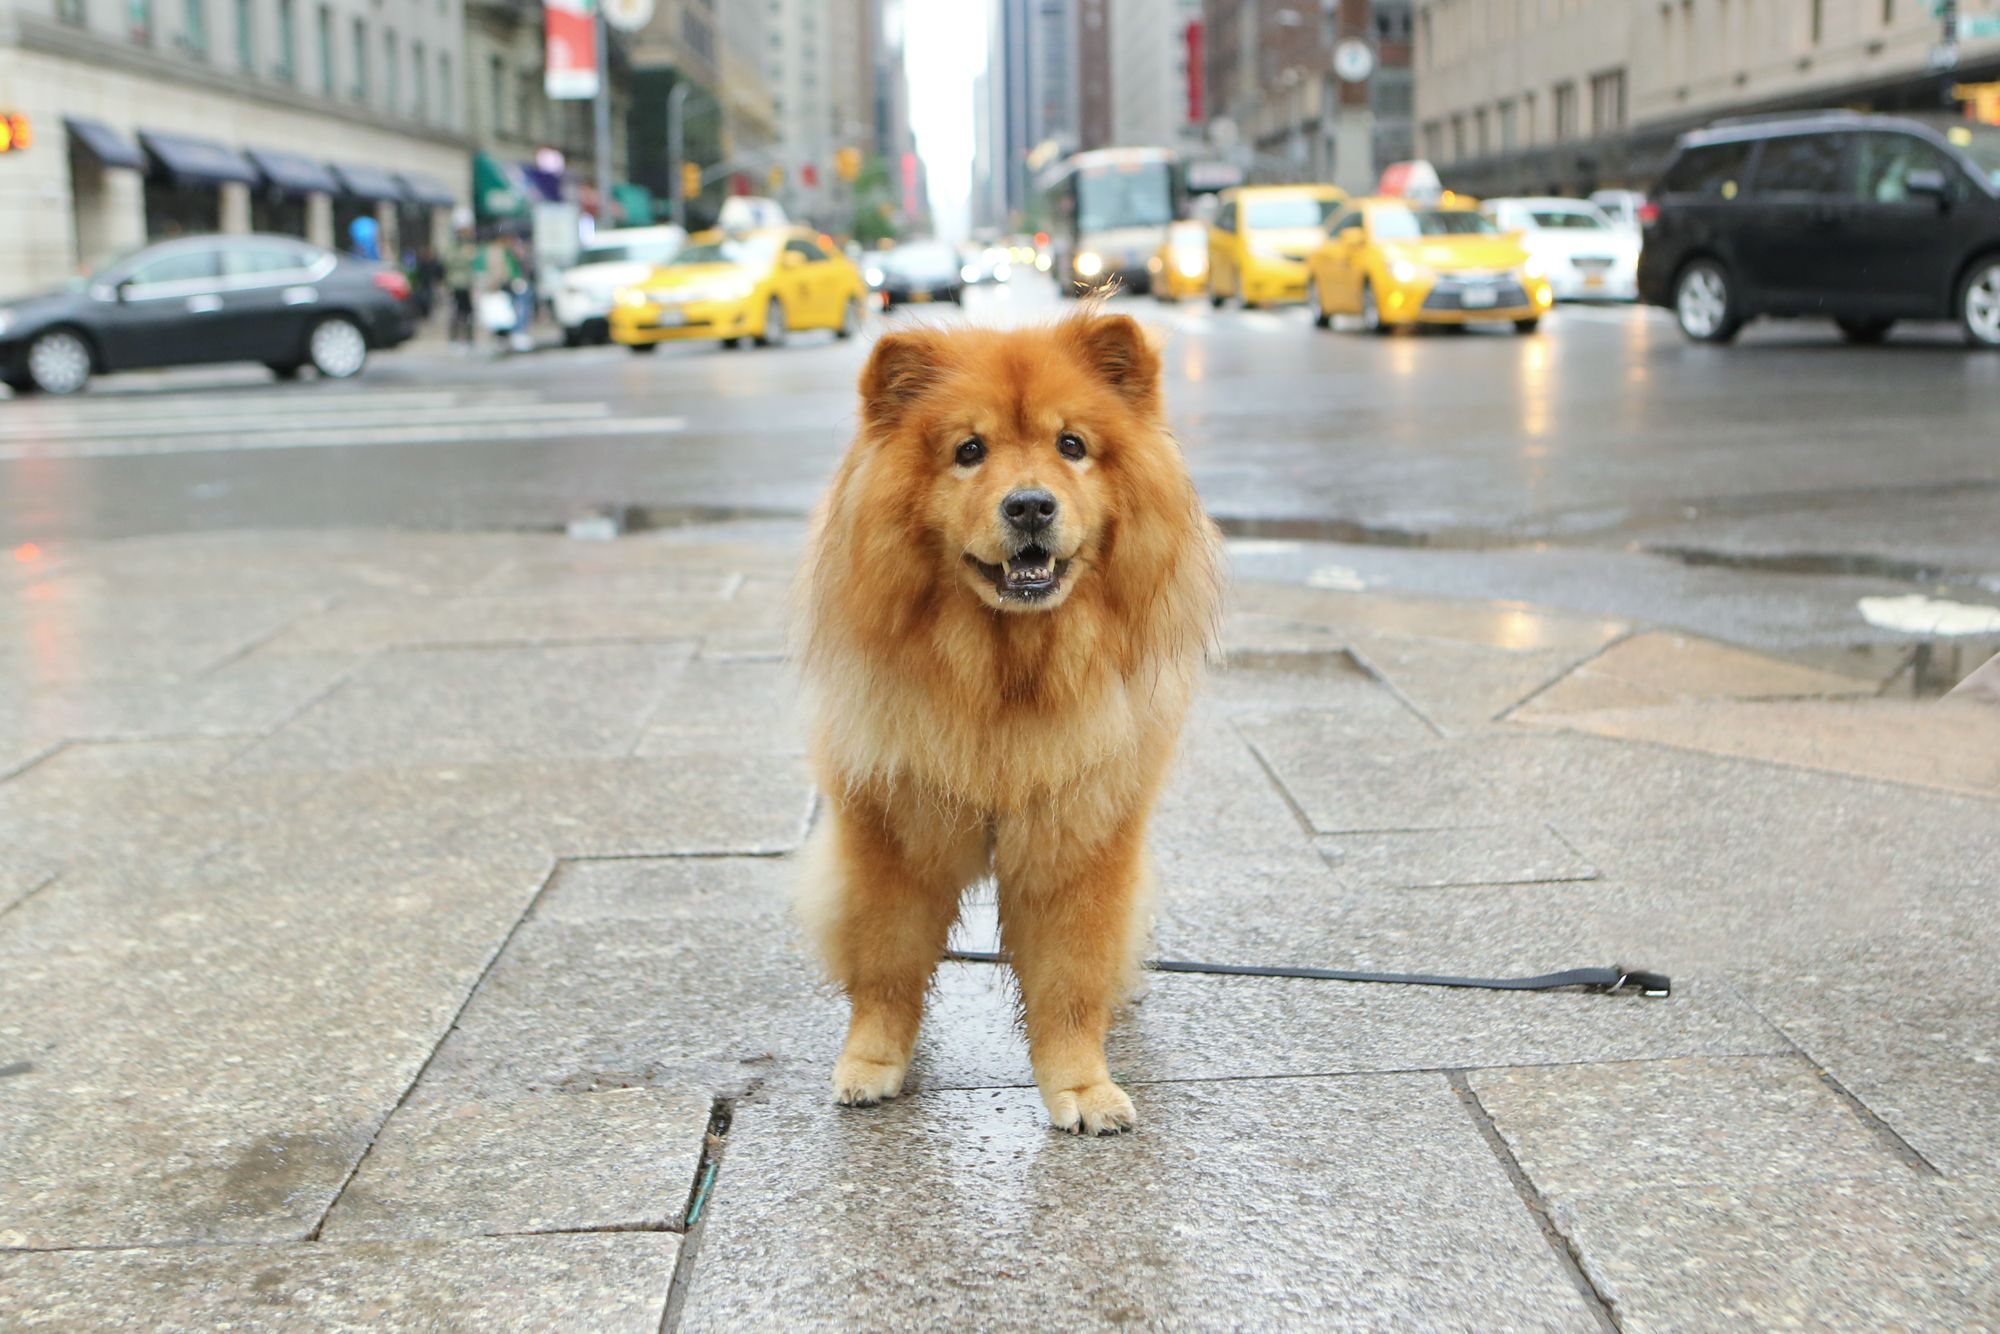 Walk Your Pet Month: America's 5 Most Dog Friendly Cities